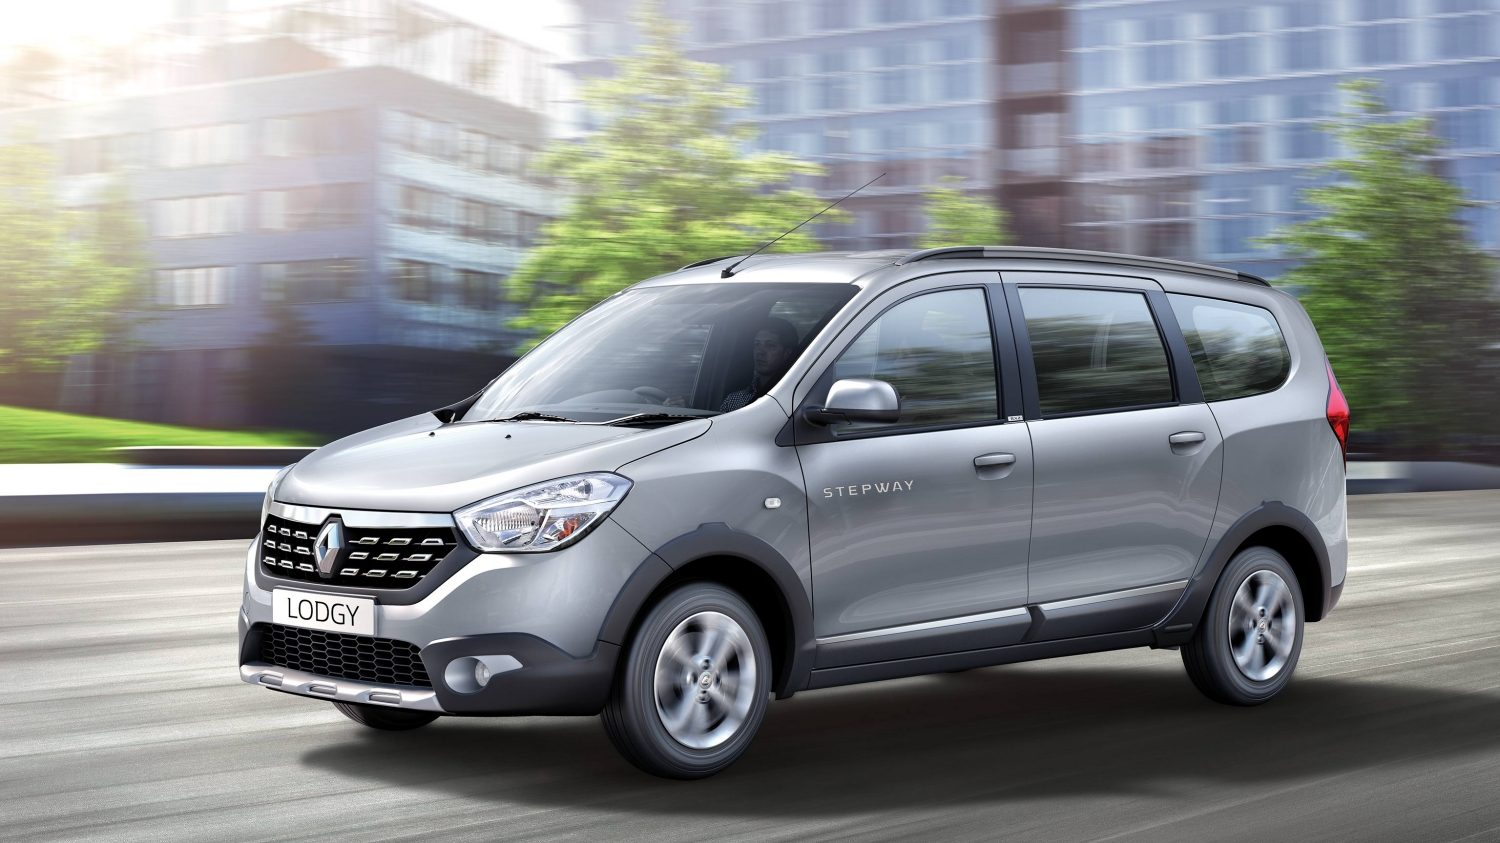 Image result for Renault Lodgy Stepway is a successor to the Lodgy MPV